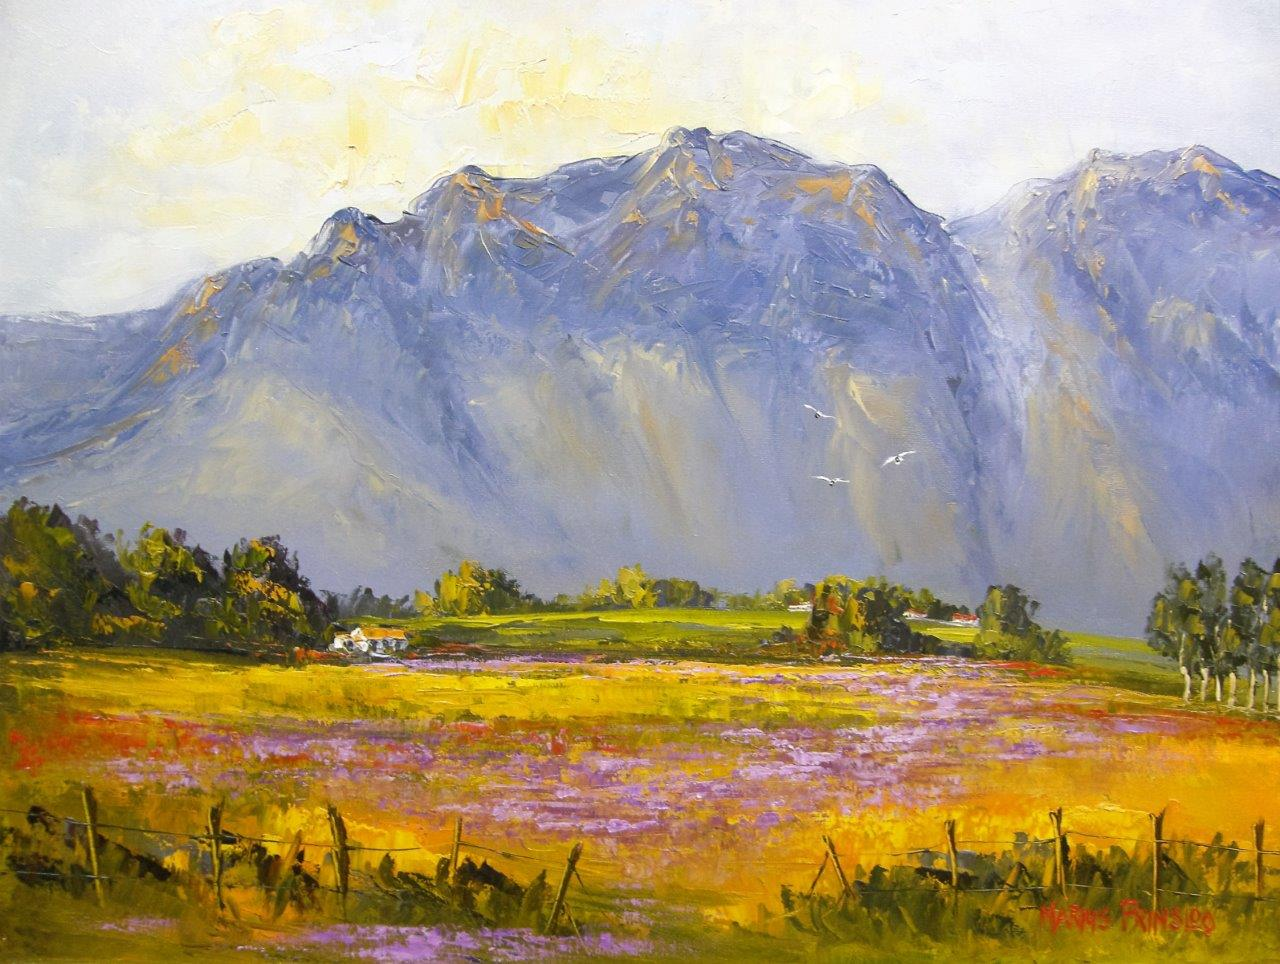 marius prinsloo, marius prinsloo art for sale, marius prinsloo, marius prinsloo art, south african artist, paintings for sale, crouse art gallery